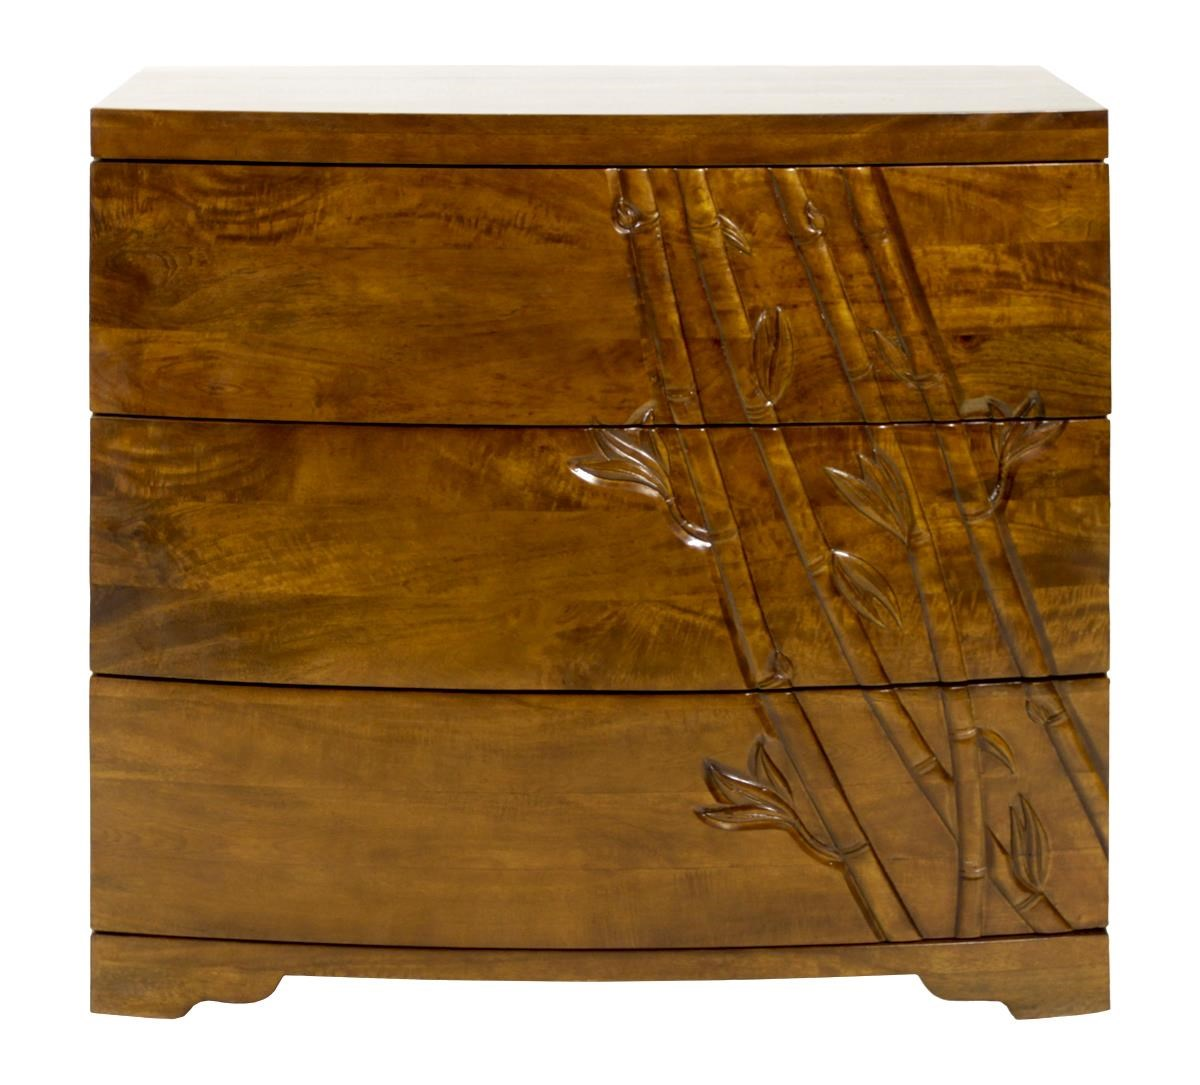 Jamieson Import Services, Inc. Foliage 3 Drawer Dresser - Item Number: 3DDBBMOA38 Foliage